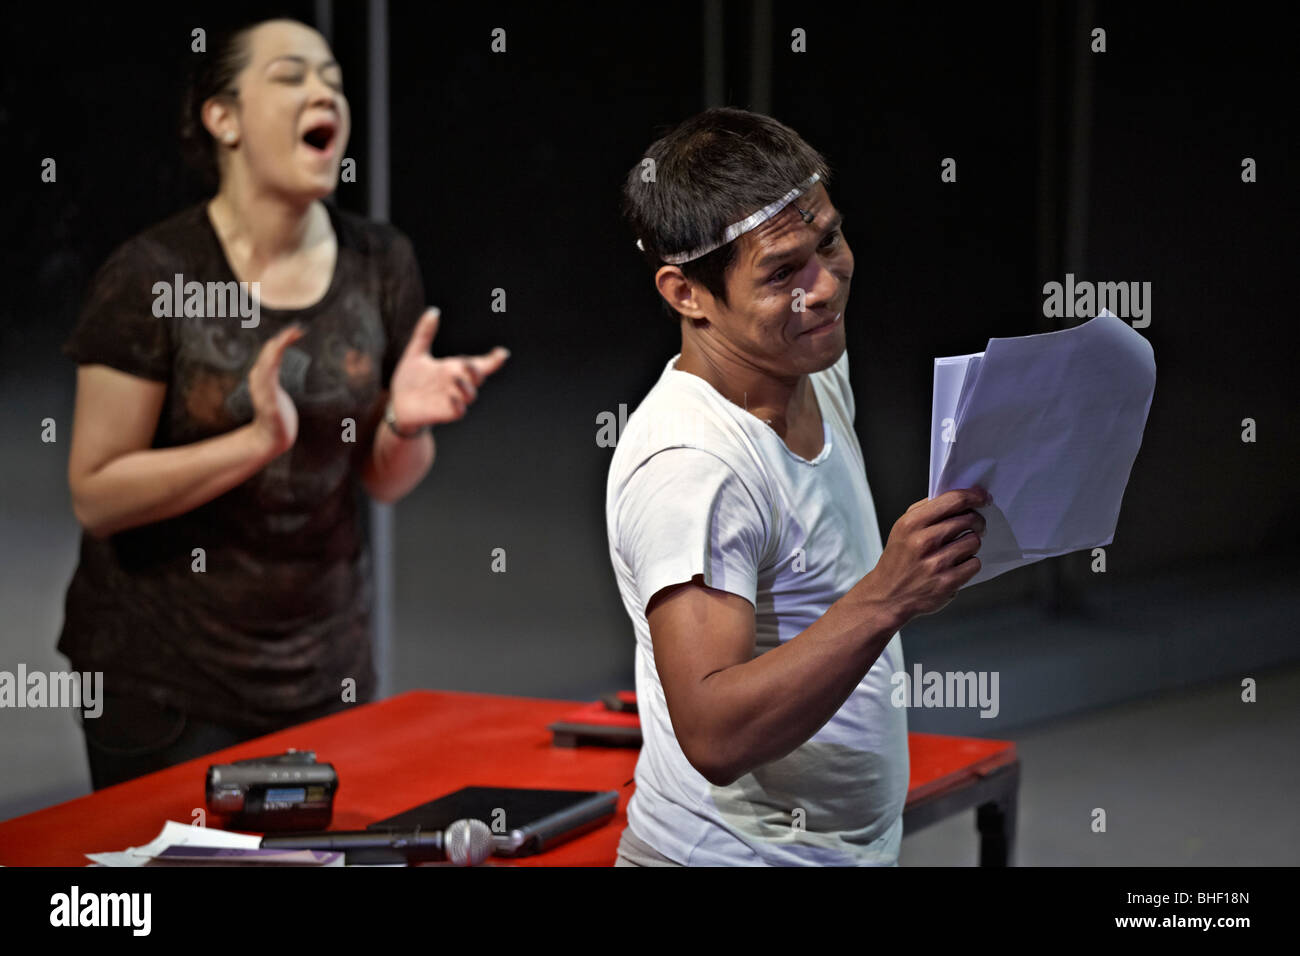 Thai actors on stage rehearsing and reading script. Thailand S. E. Asia - Stock Image